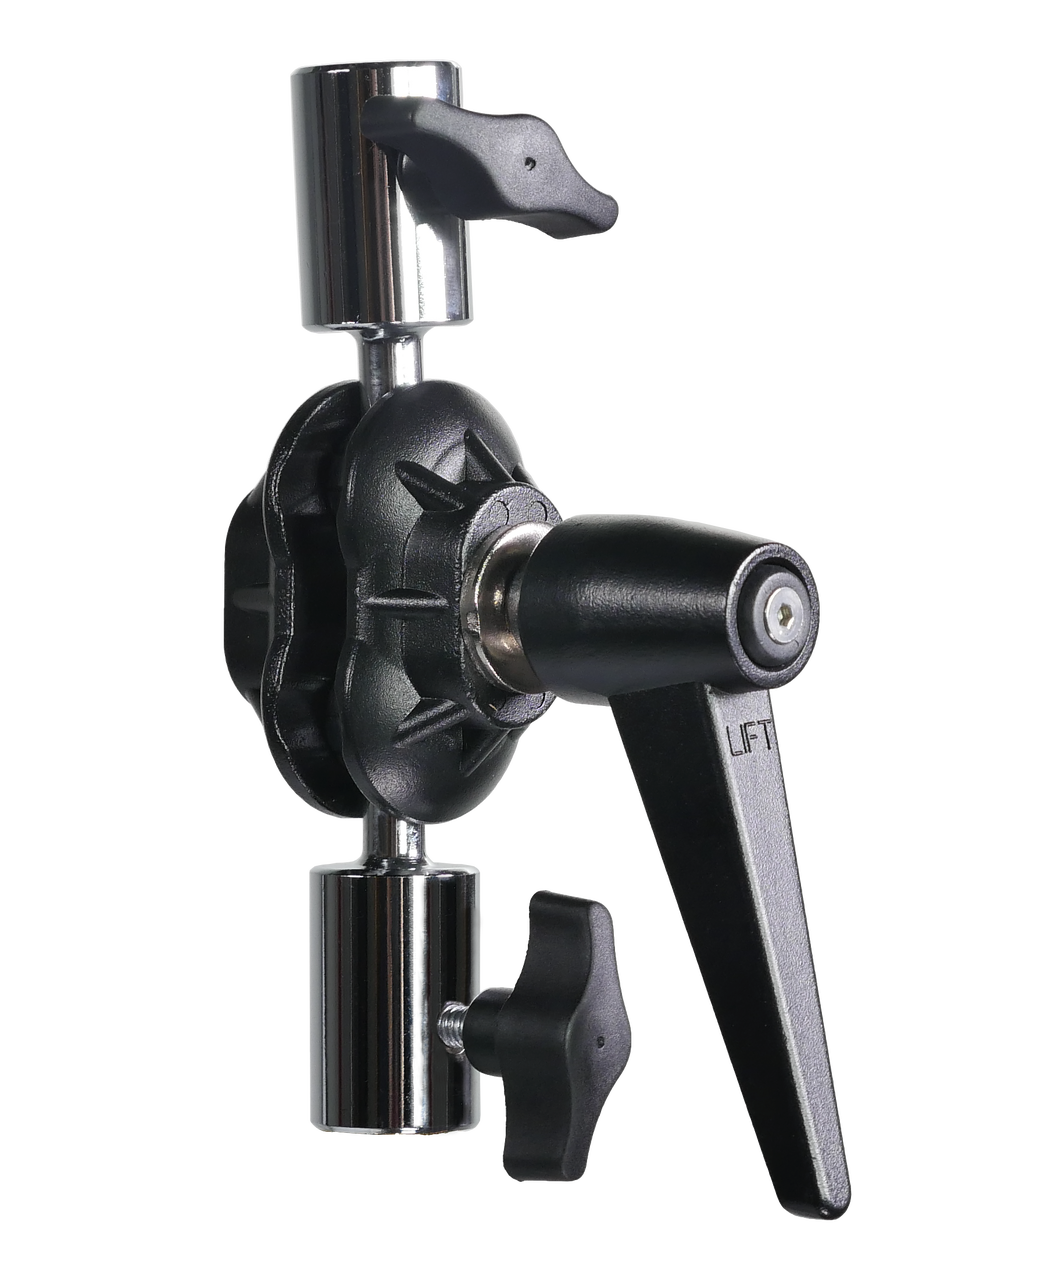 "Double Ball mount - full articulation for endless mounting possibilities  1/4 20"" Female / Female  - Mount BladeLight To C-Stand or Light Stand."